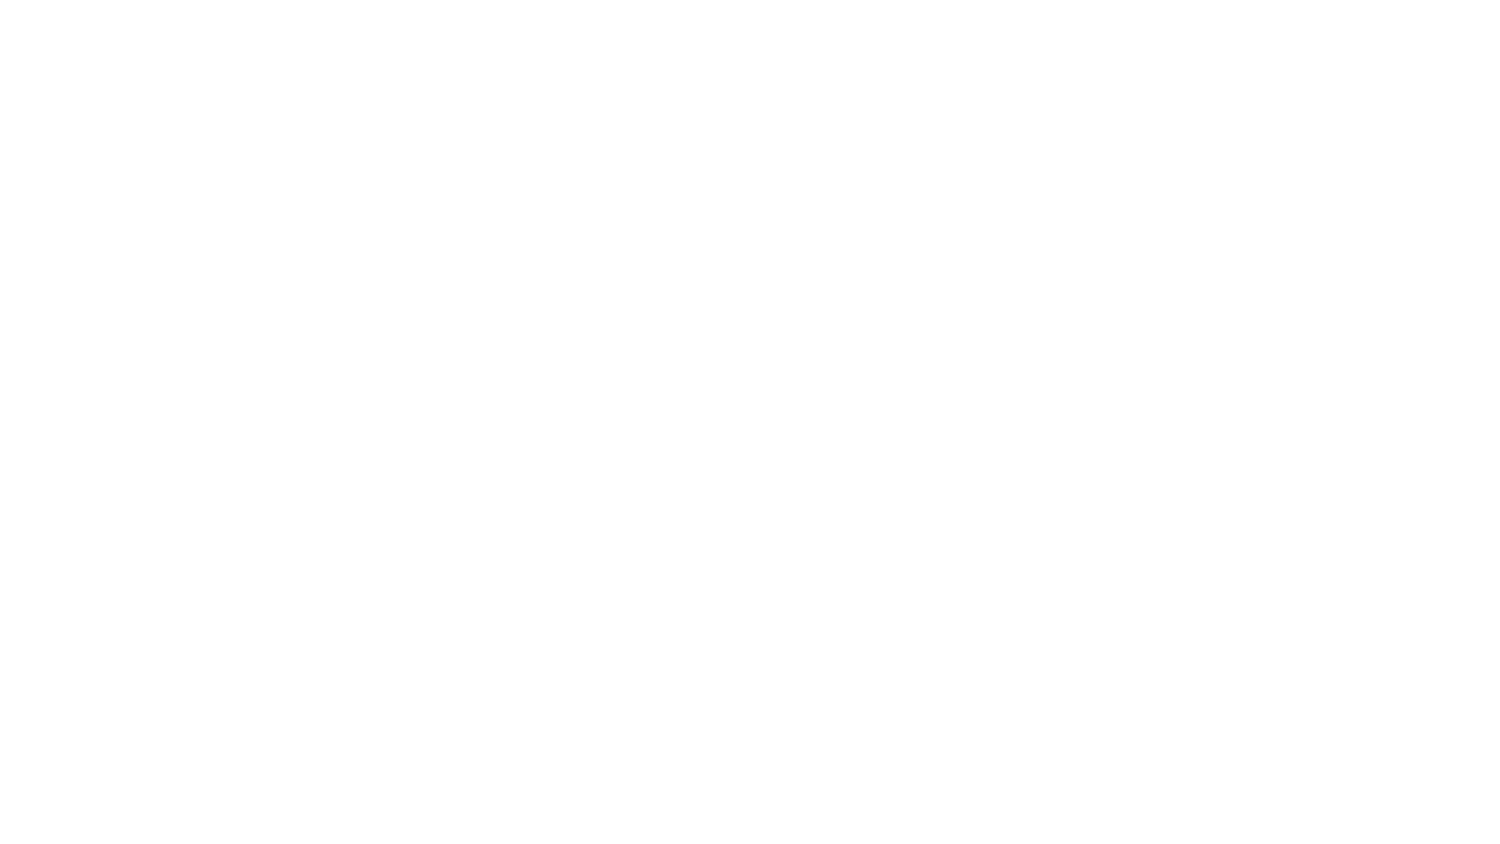 Front Range Alliance Church